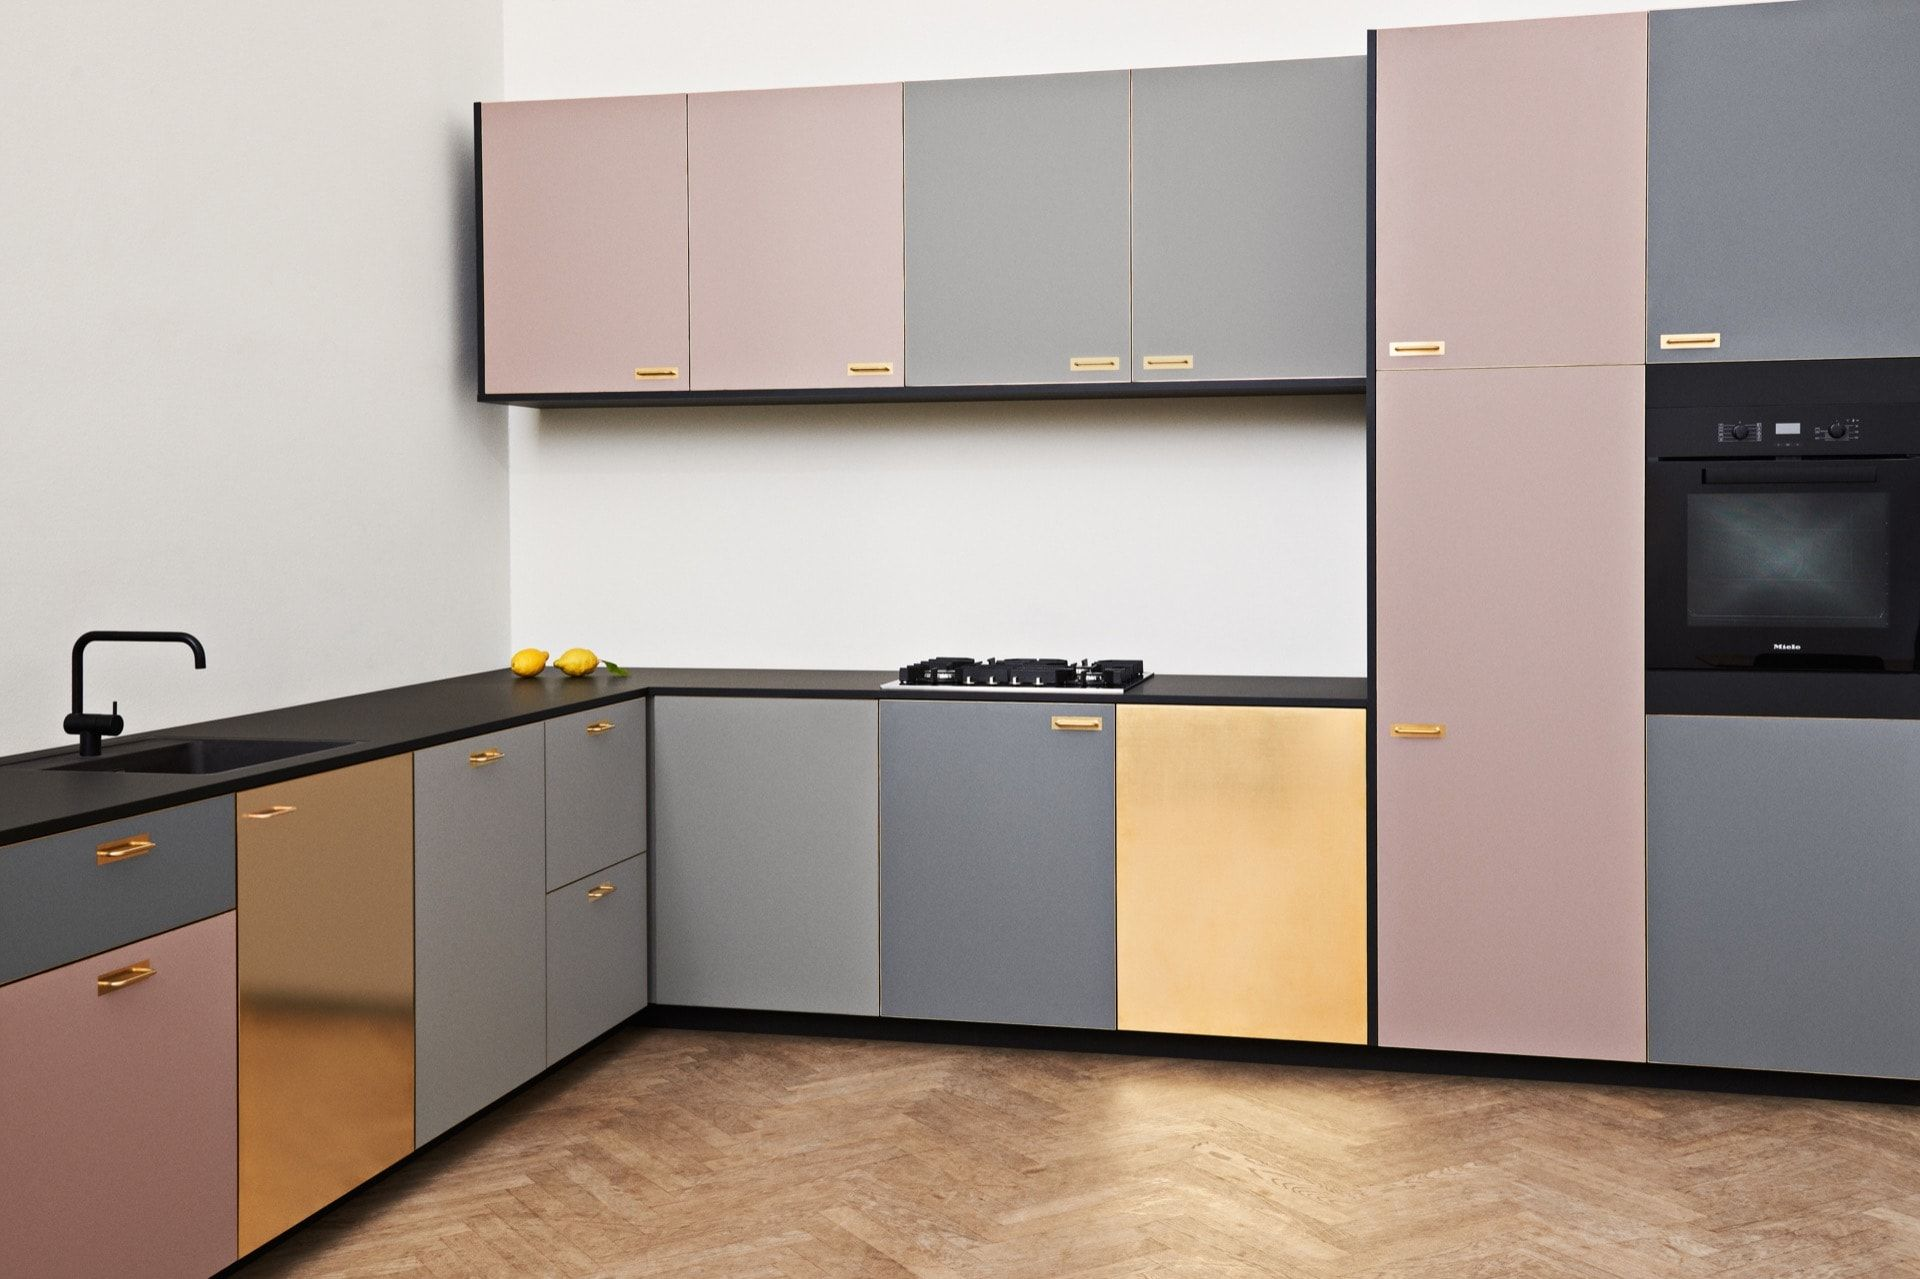 Reform S Ikea Kitchen By Meyer Bengtsson A Design In Laminate With Black And Brass That Gives Kitchen Inspiration Design Kitchen Inspirations Kitchen Interior